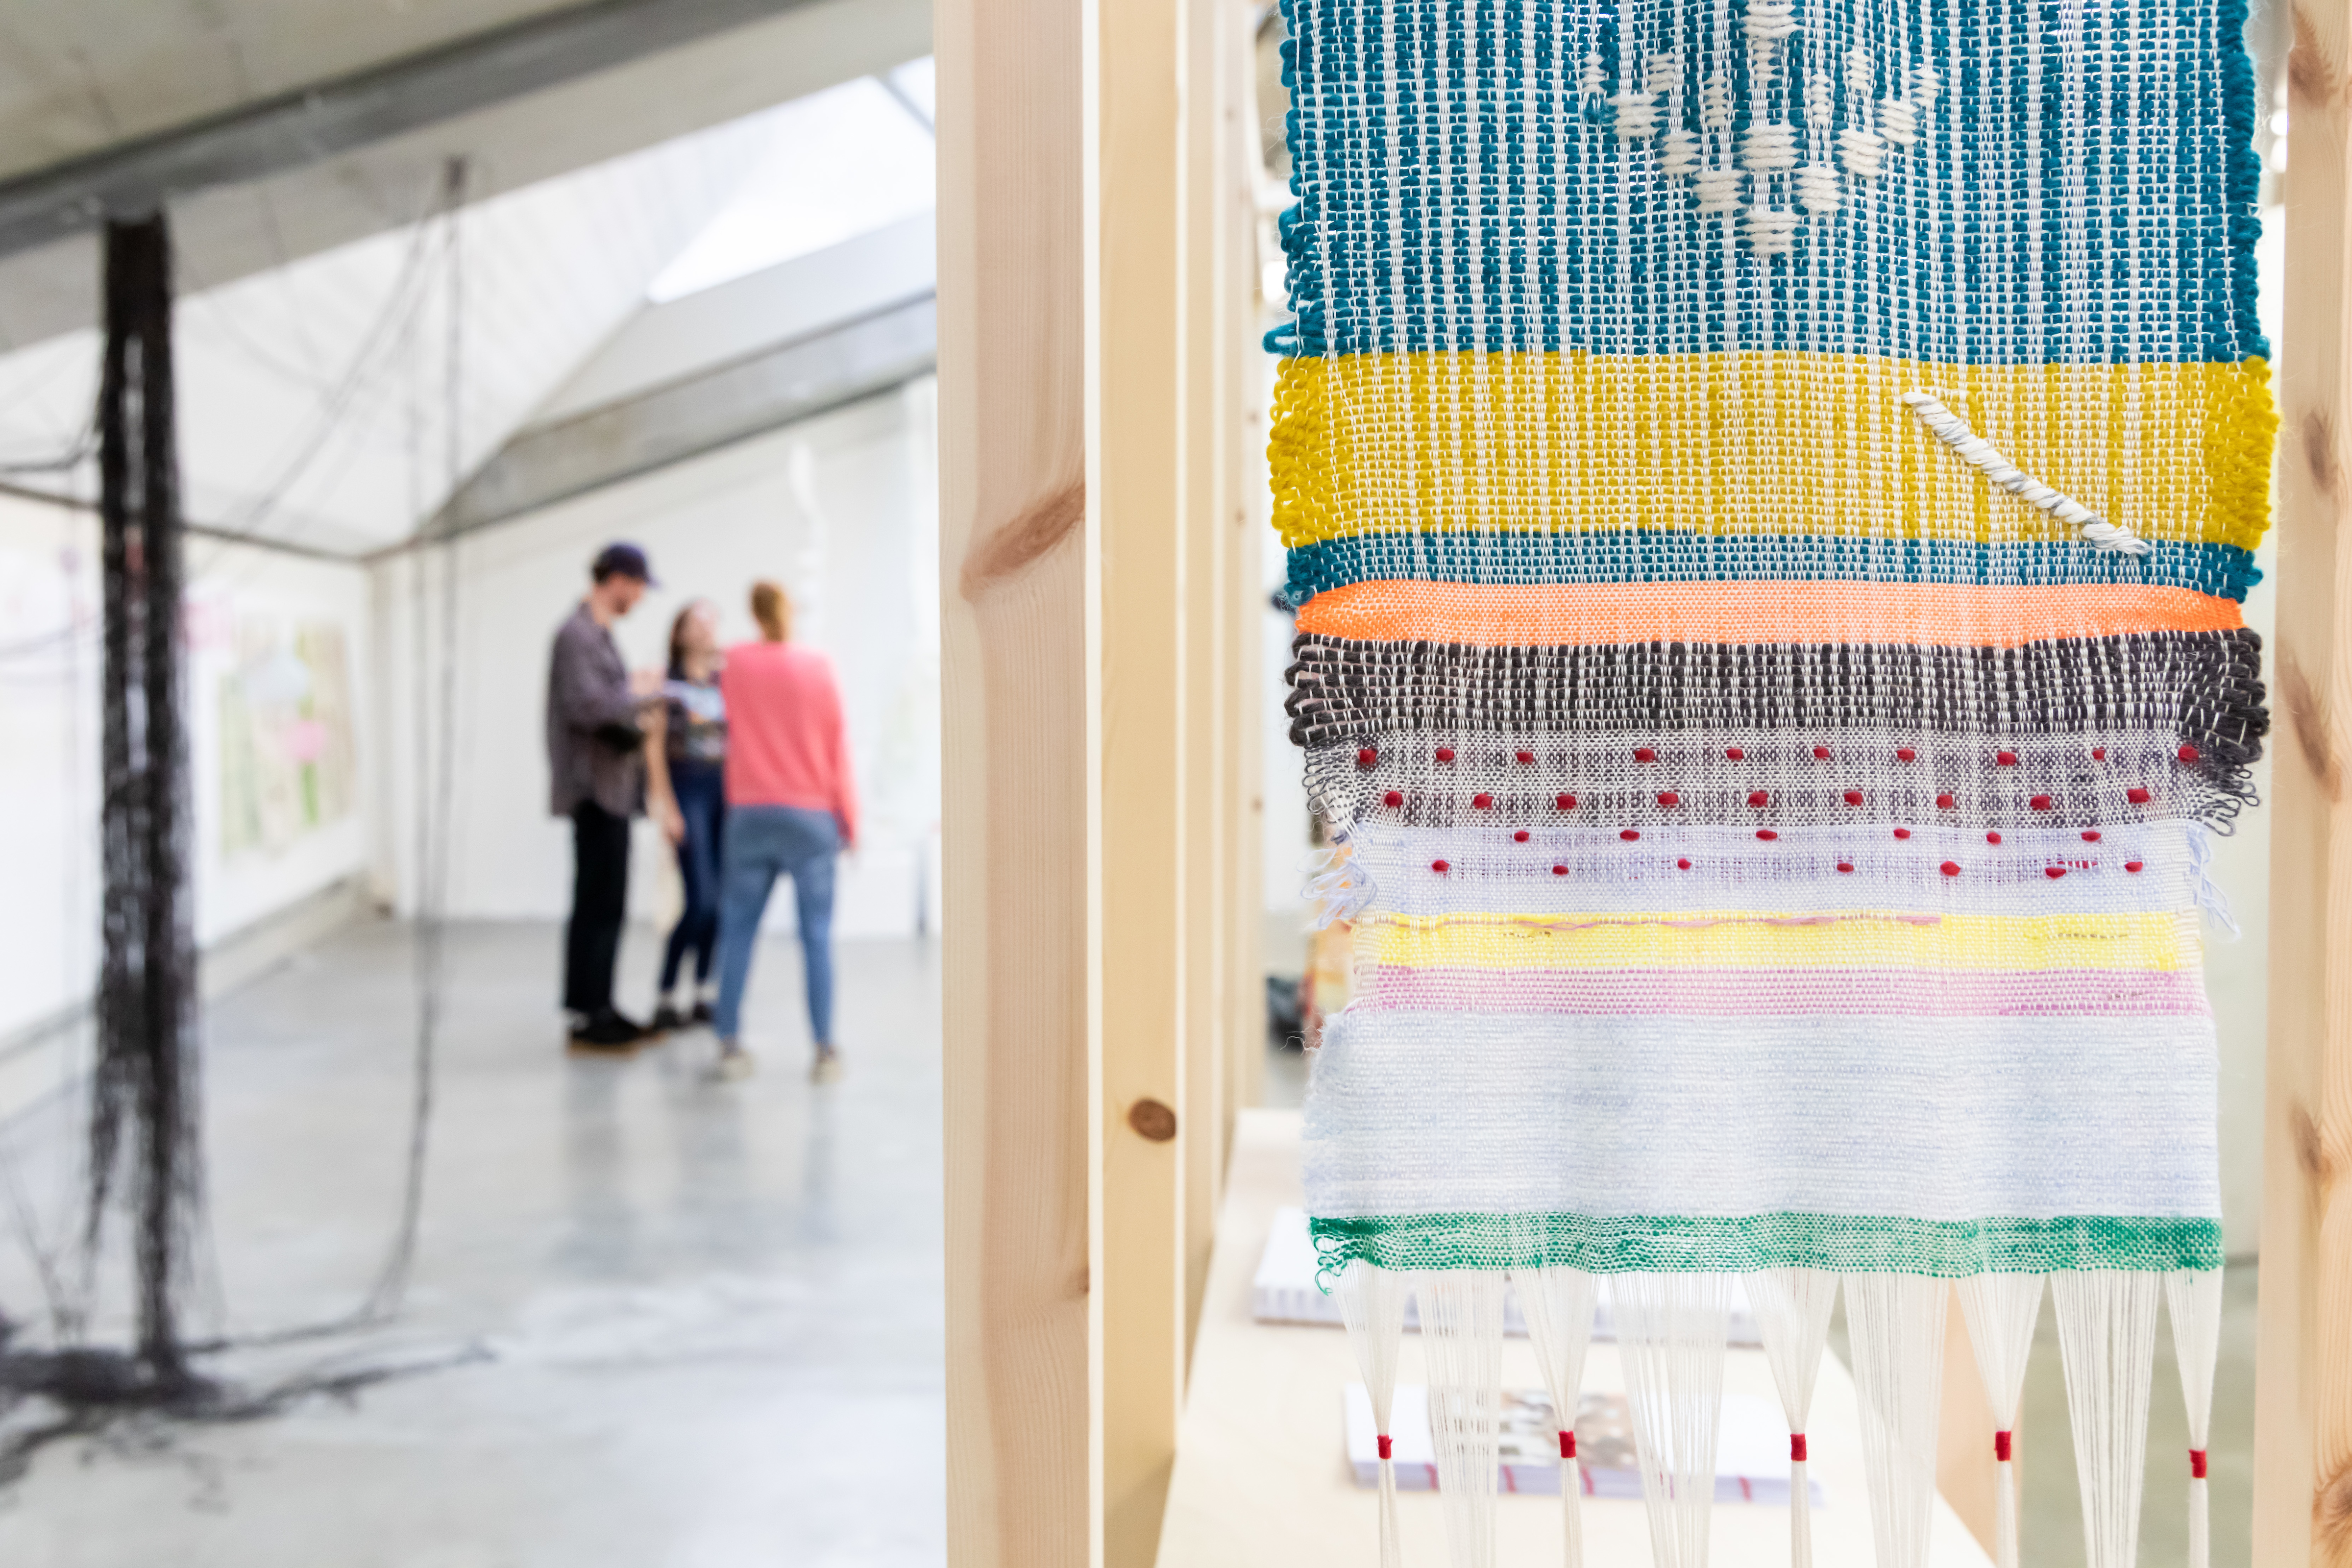 Colourful textiles work with people in background